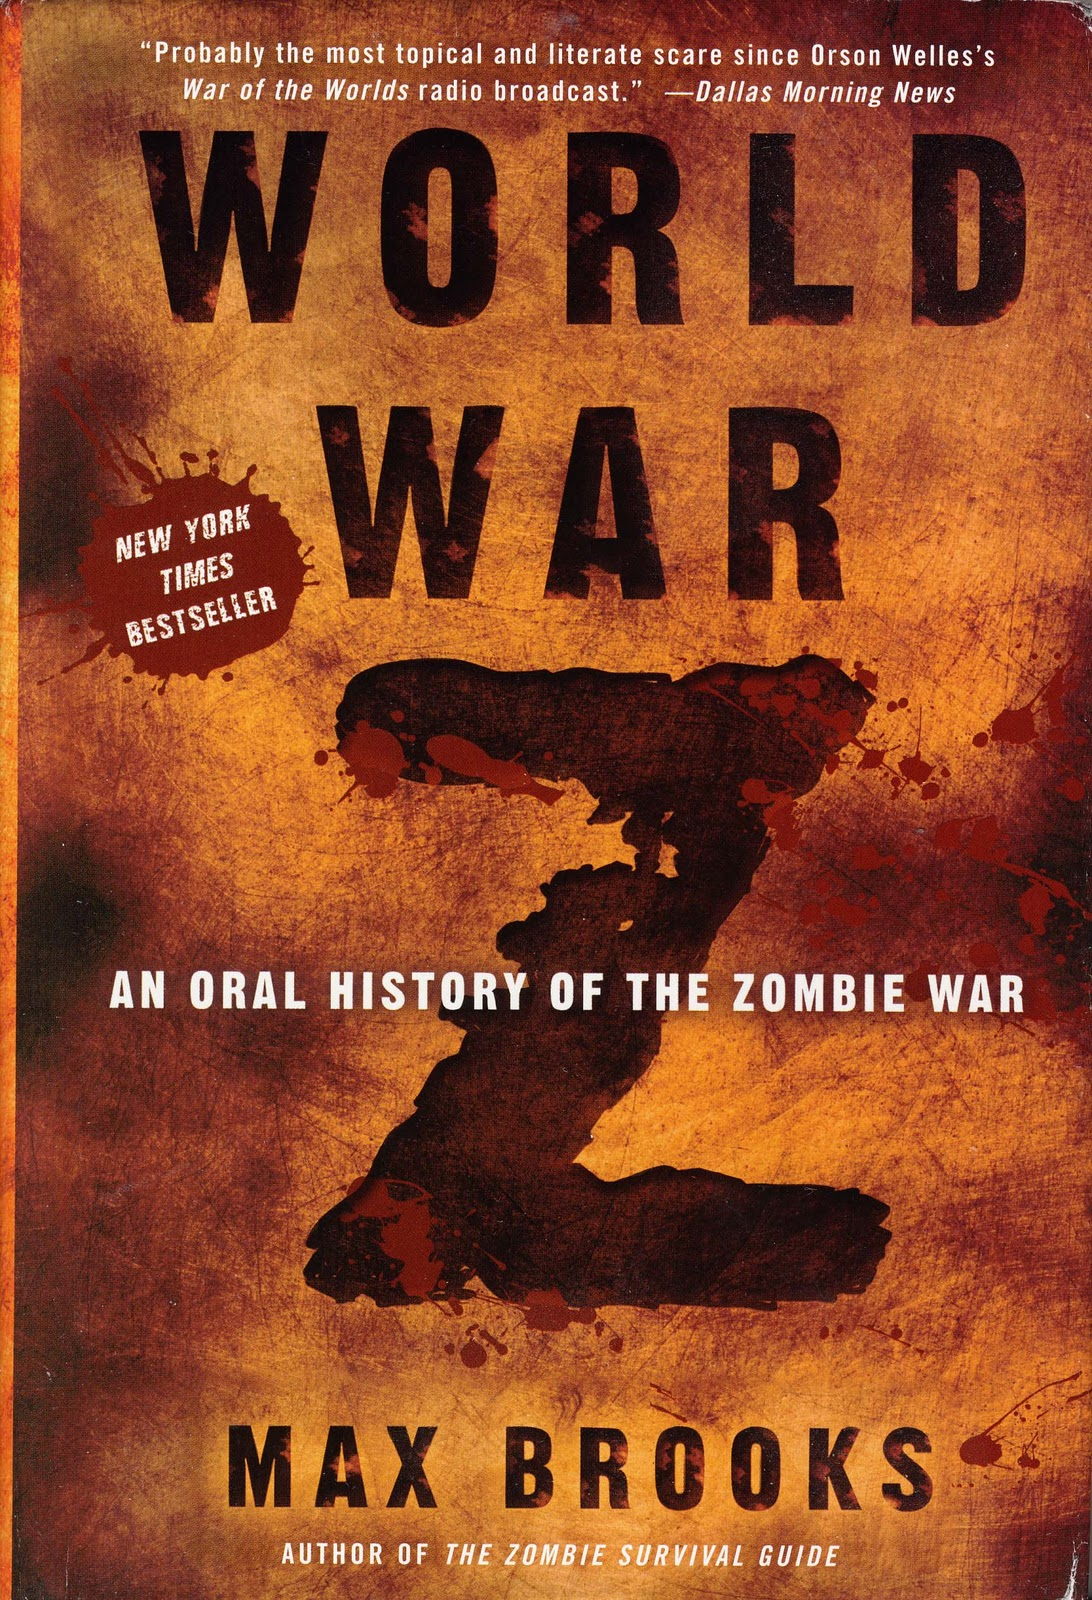 The Max Brooks World War Z book cover.